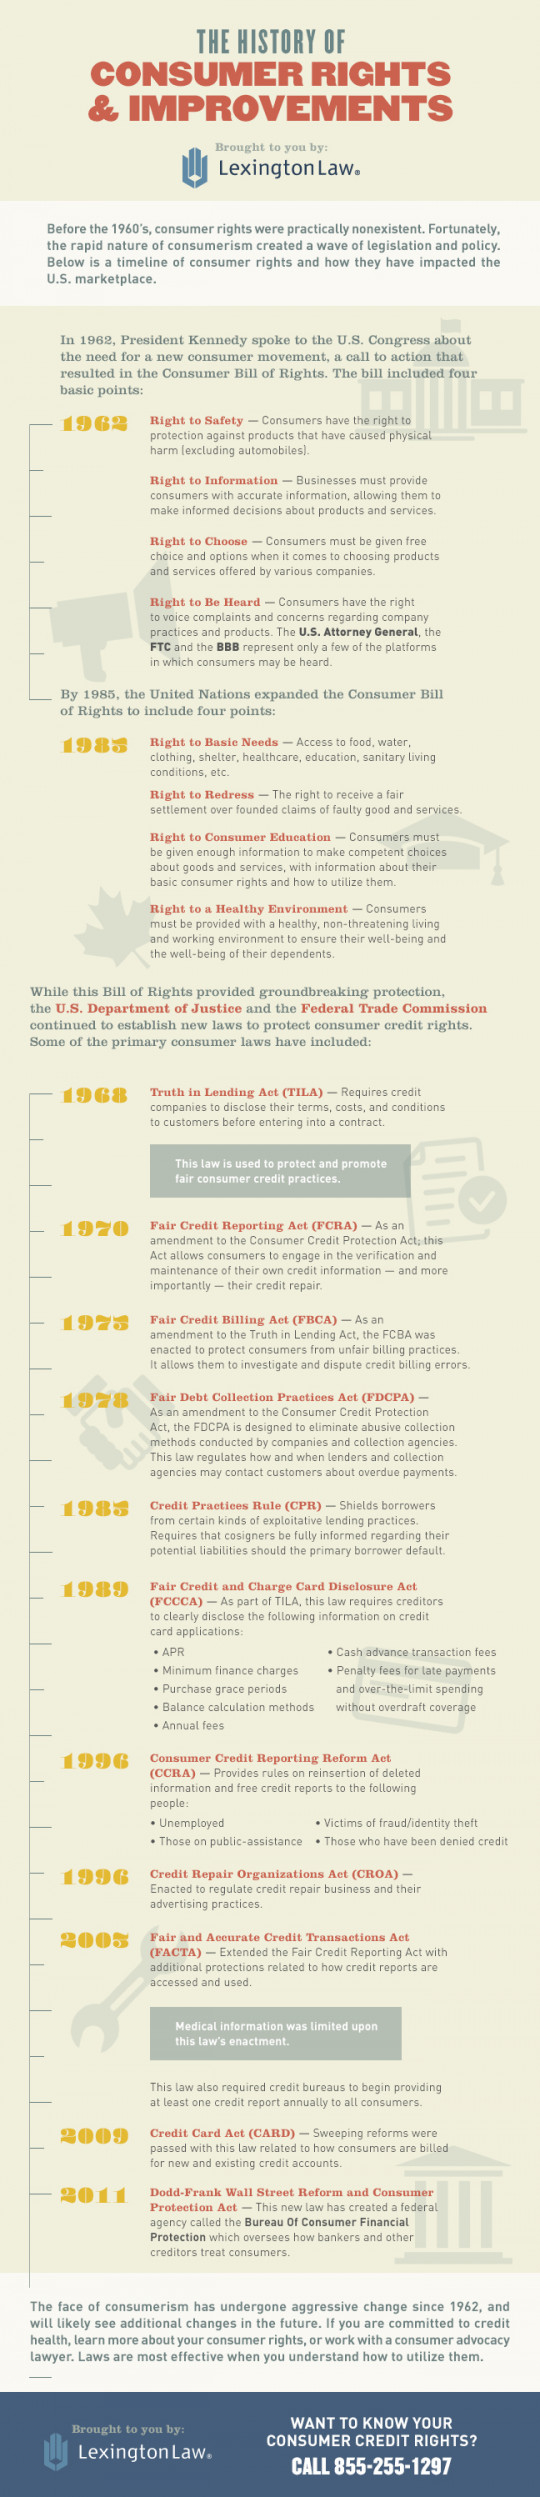 The History of Consumer Rights & Improvements